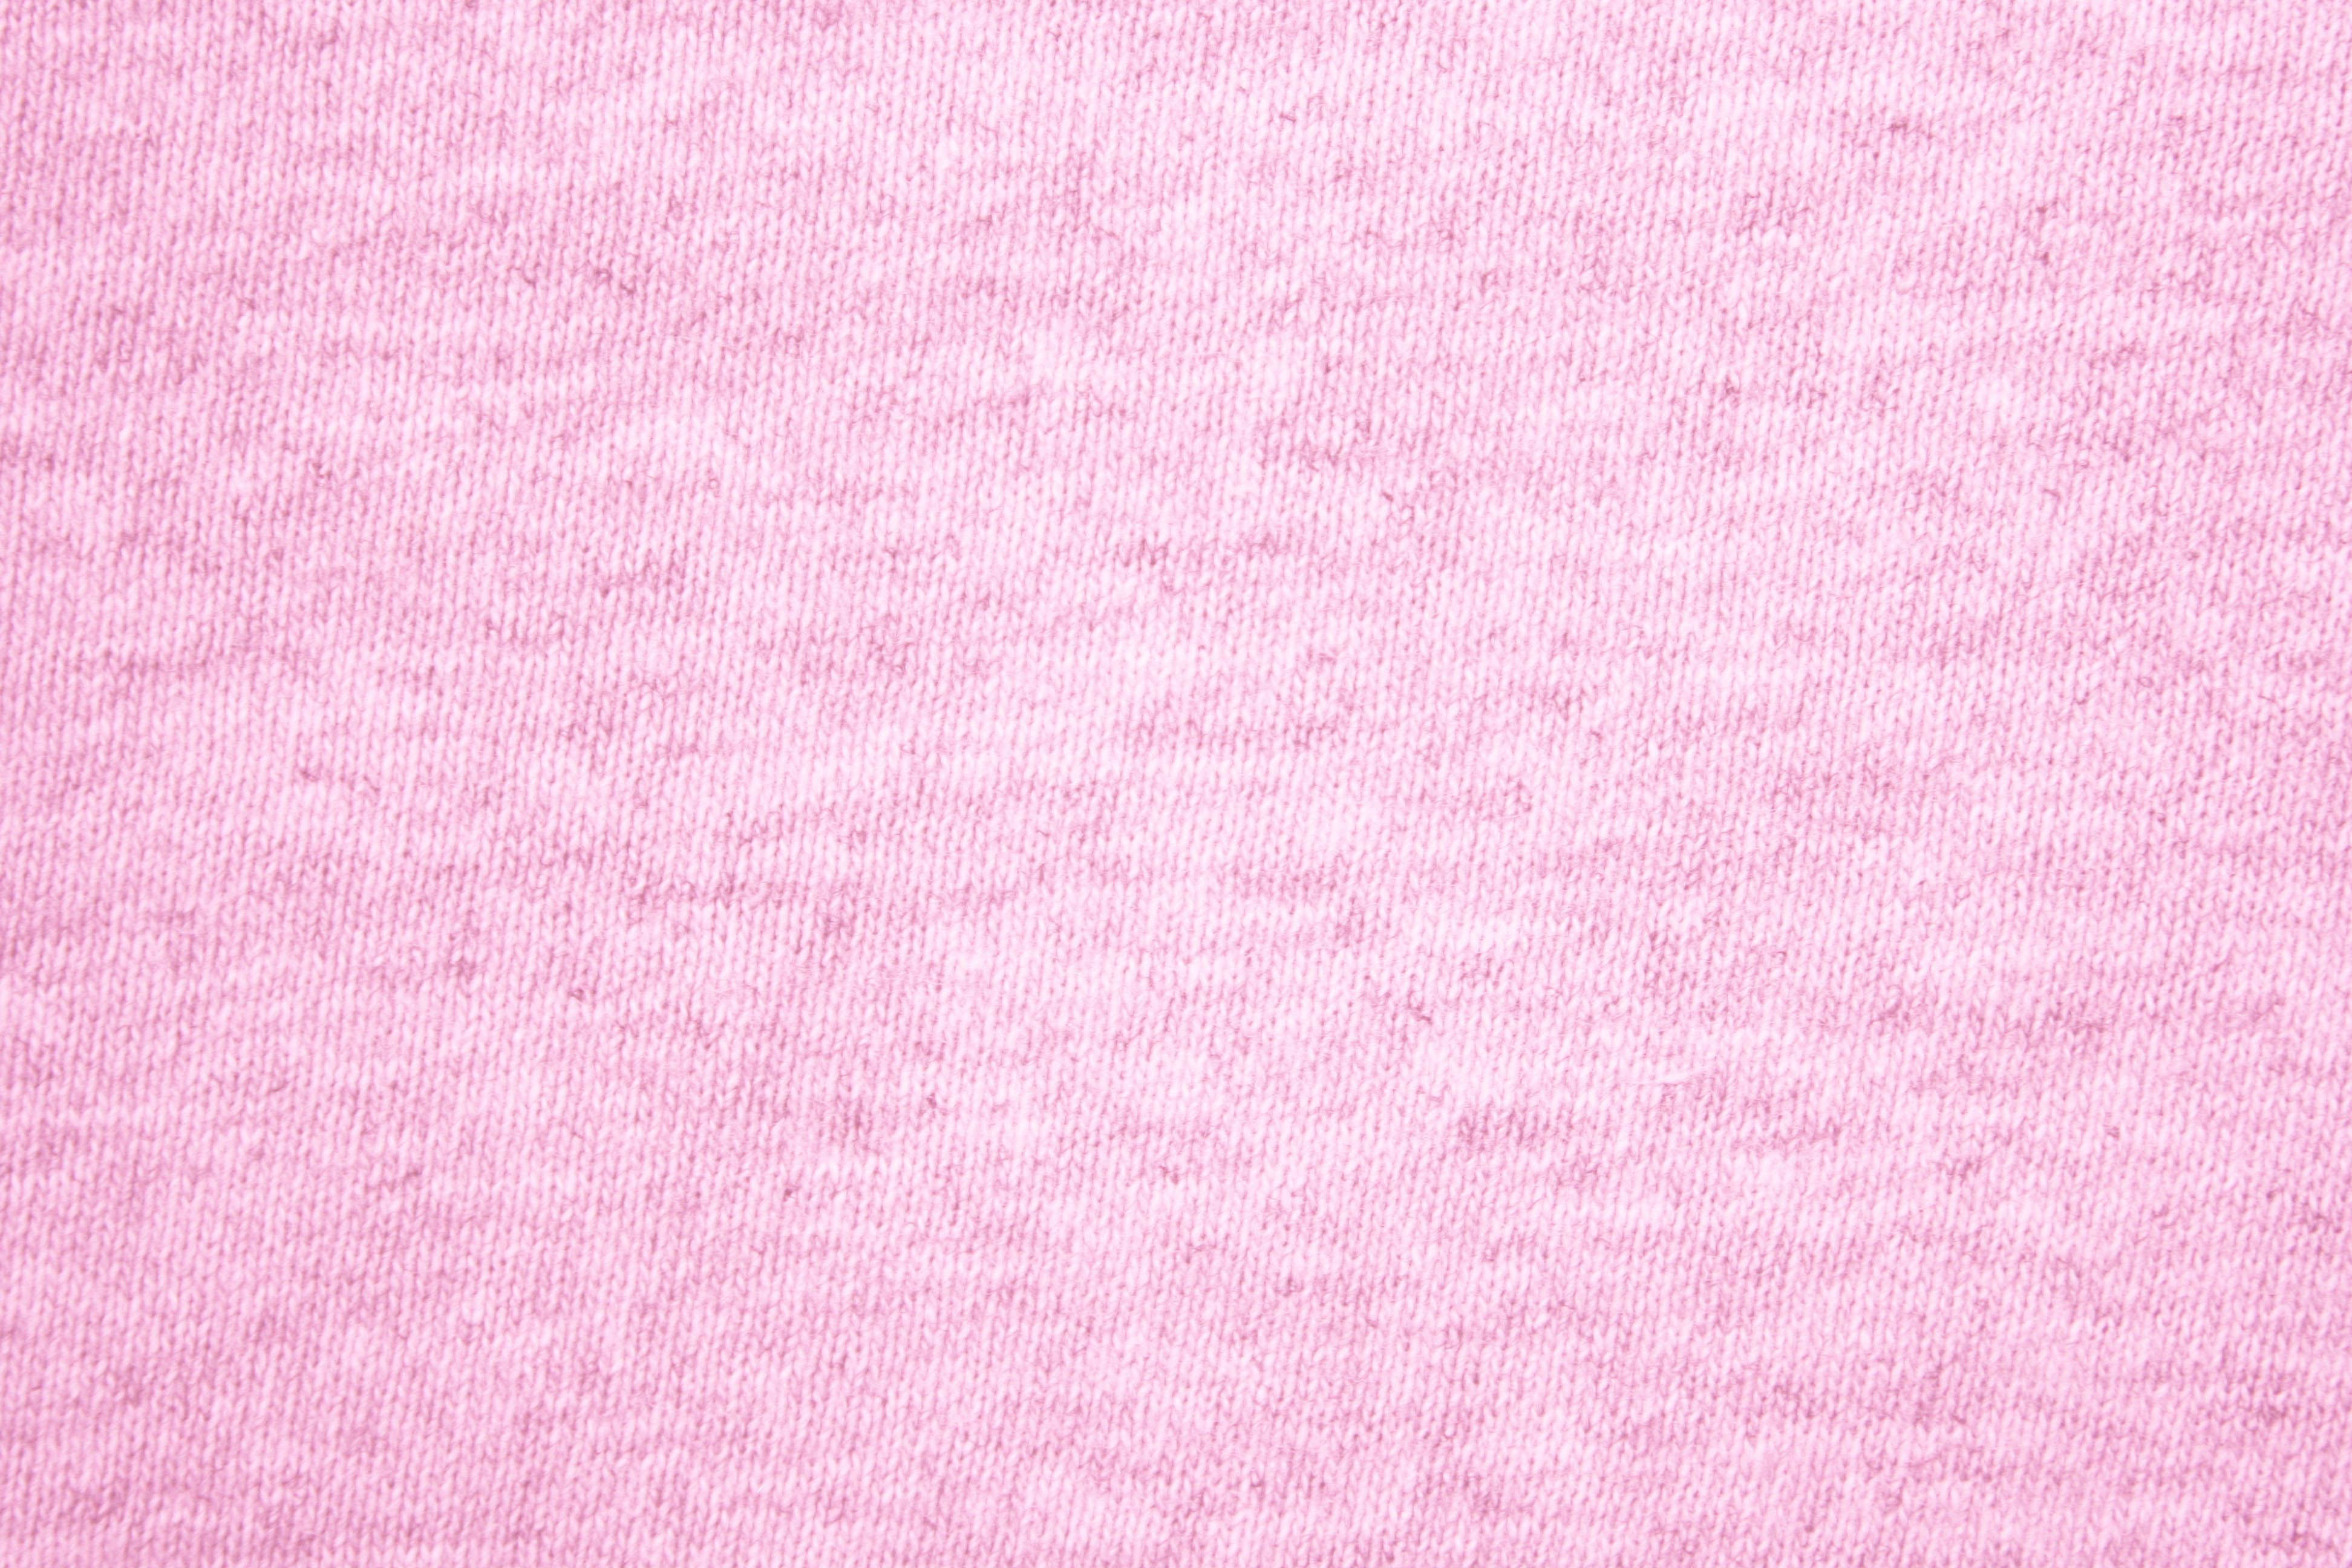 Pink fabric texture free high resolution photo dimensions 3888 - Pink Knit T Shirt Fabric Texture